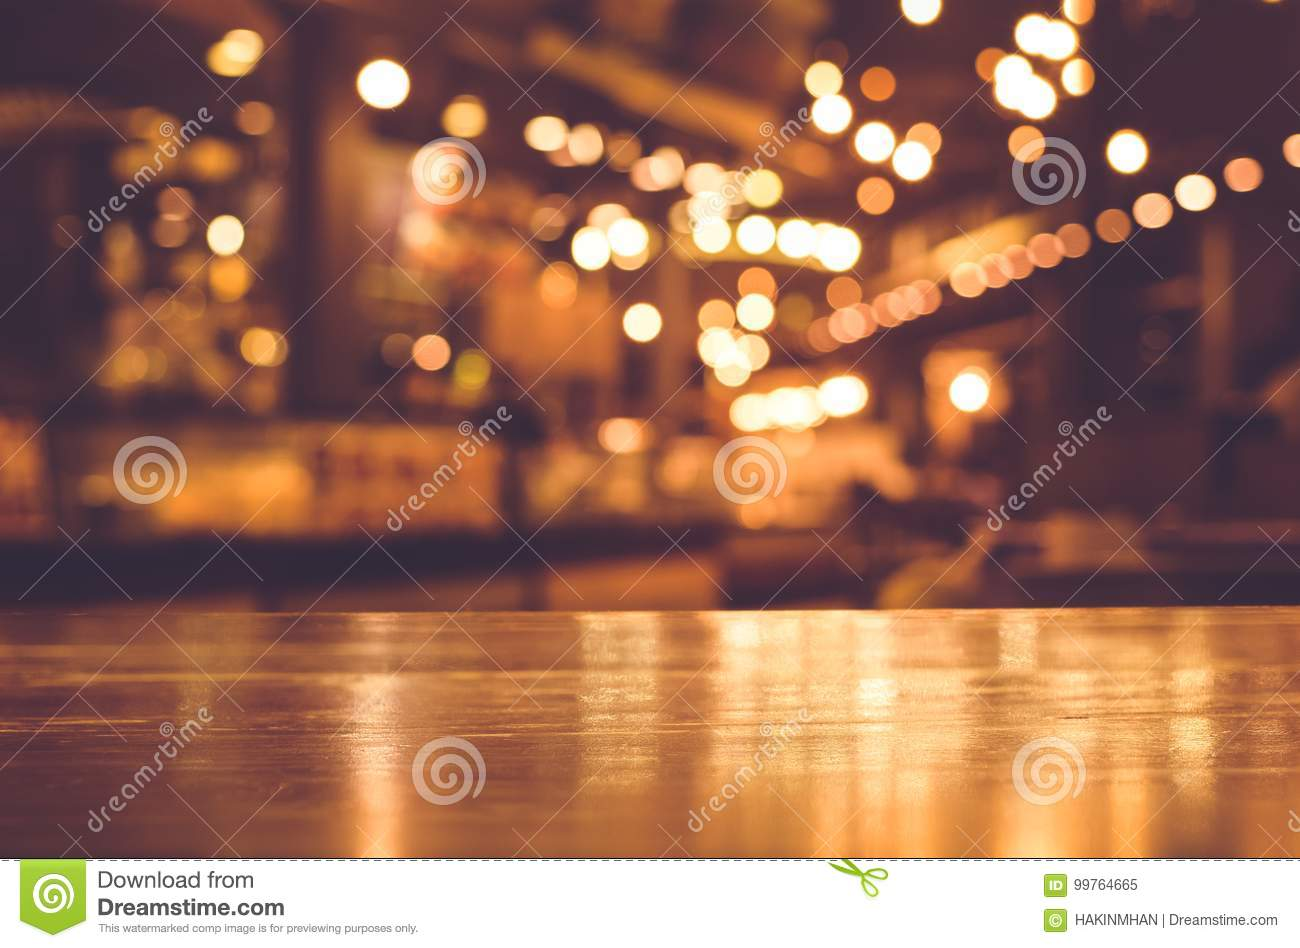 restaurant table top lighting. Royalty-Free Stock Photo Restaurant Table Top Lighting A